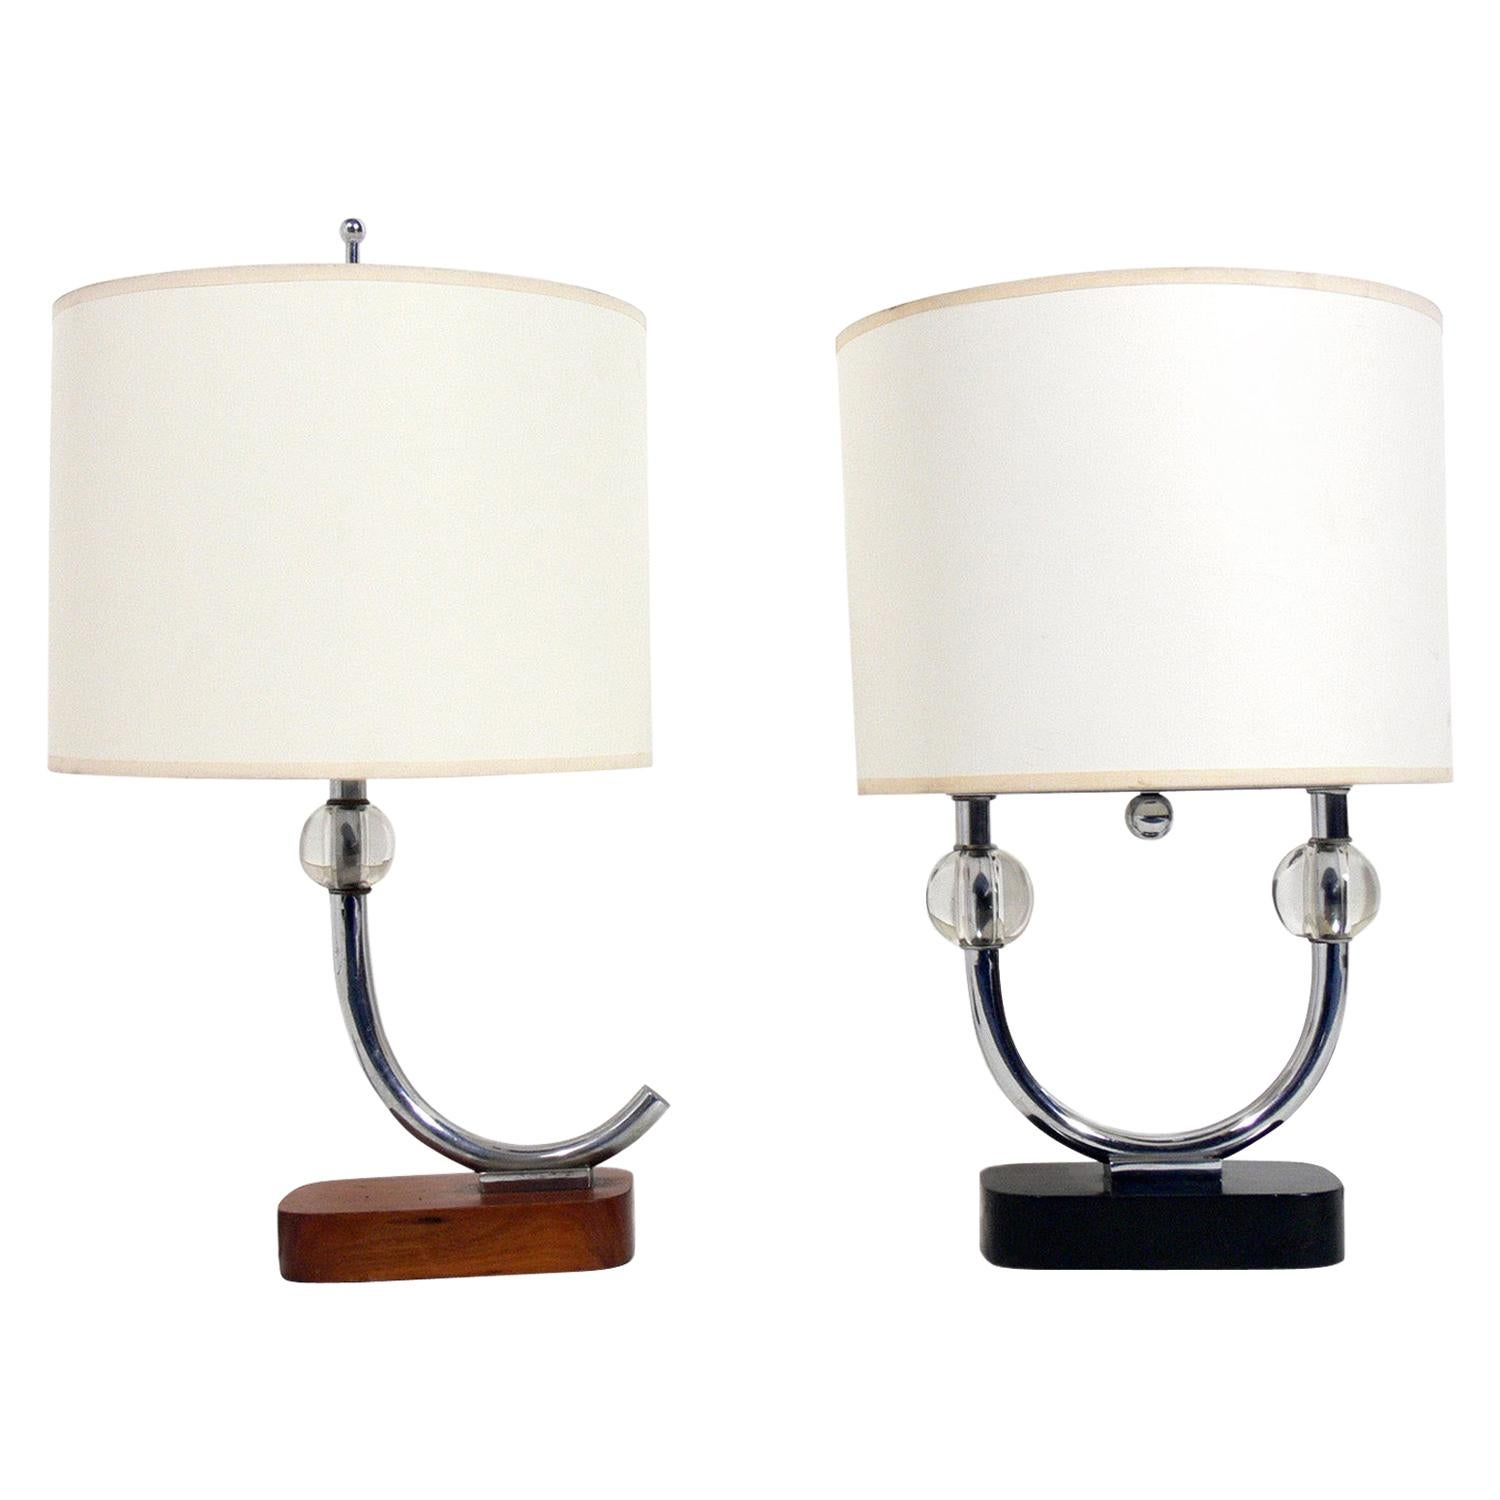 Selection of Art Deco Lamps Attributed to Gilbert Rohde